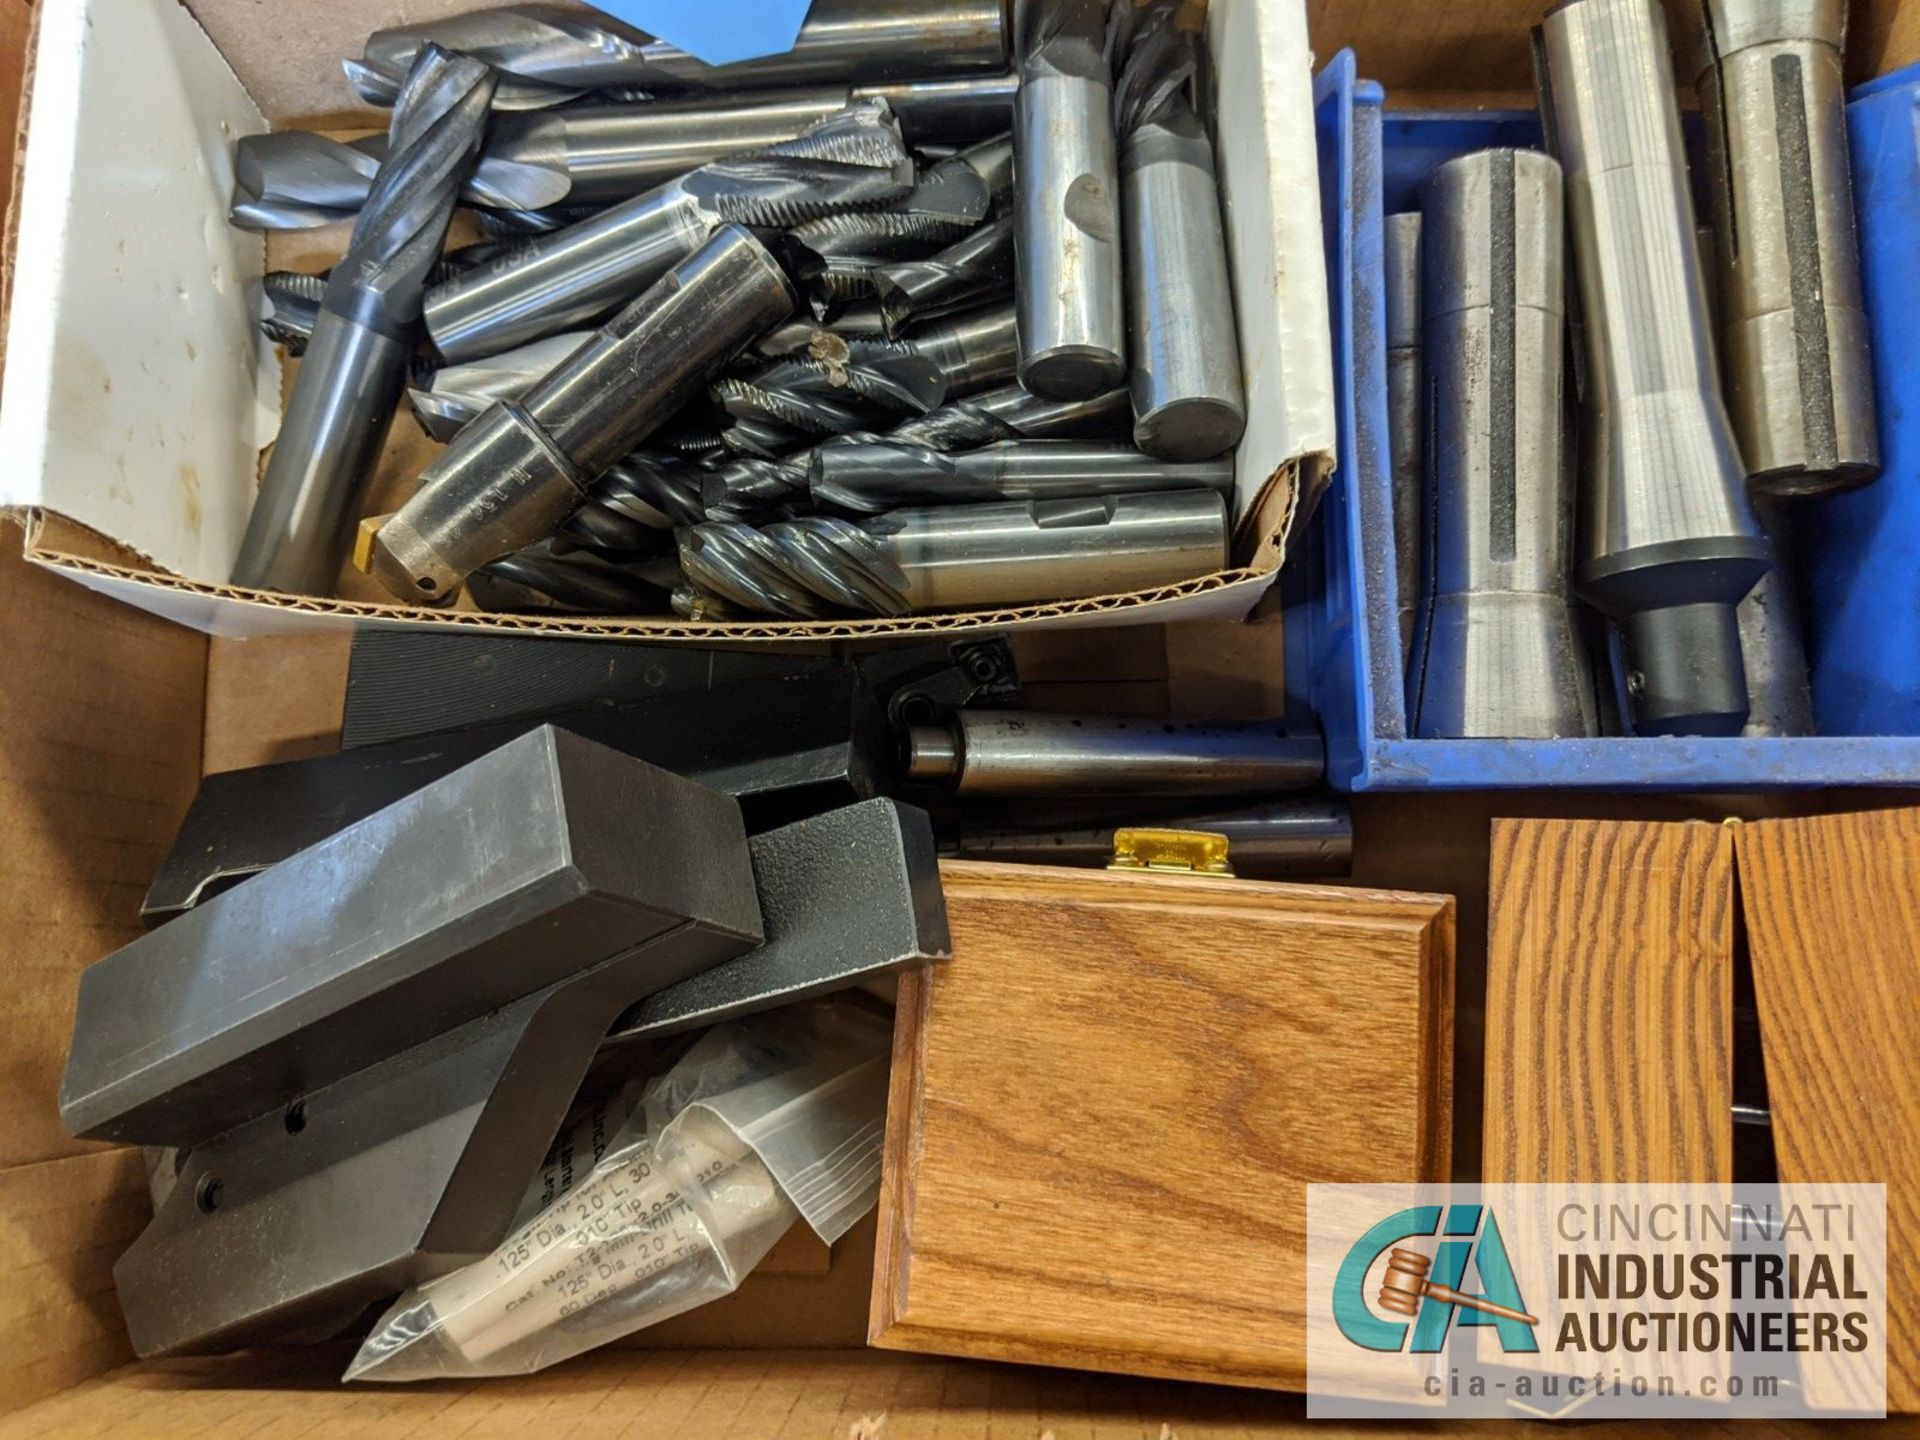 (LOT) LATHE TOOLING, R8 TOOLING, CARBIDE END MILLS - Image 2 of 2